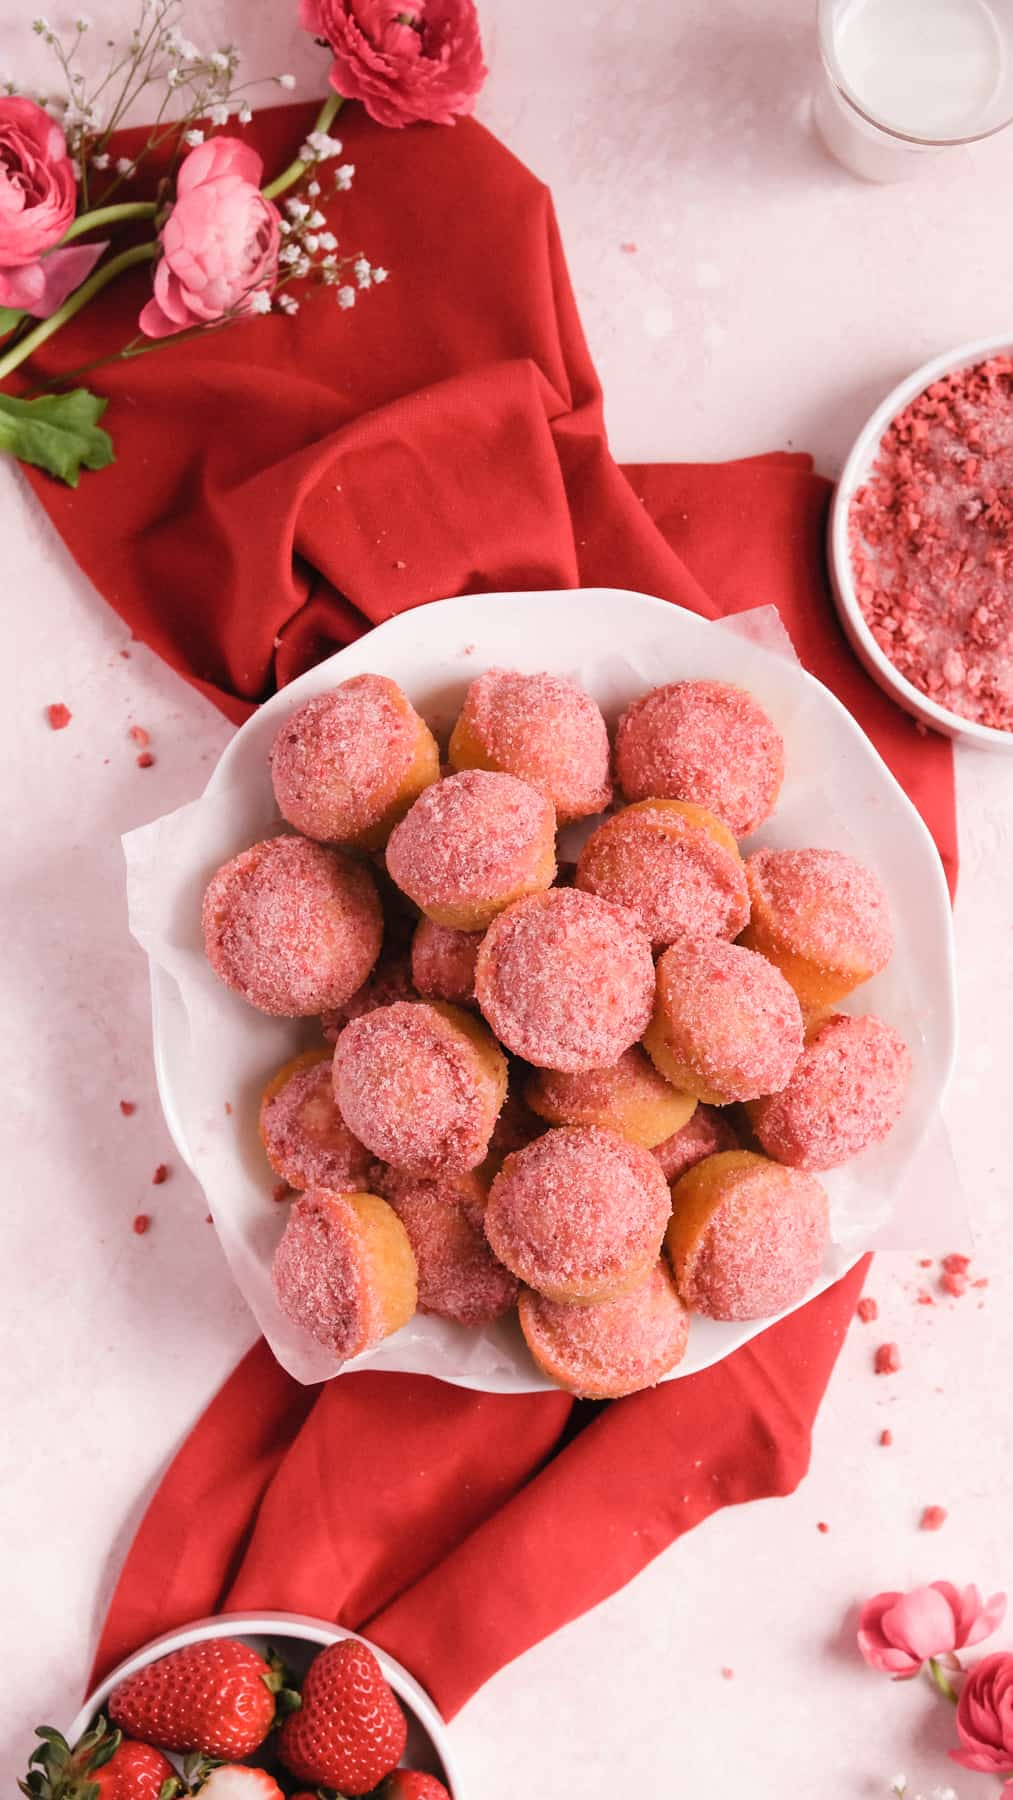 a pile of Strawberry Jam-Filled Donut Muffins